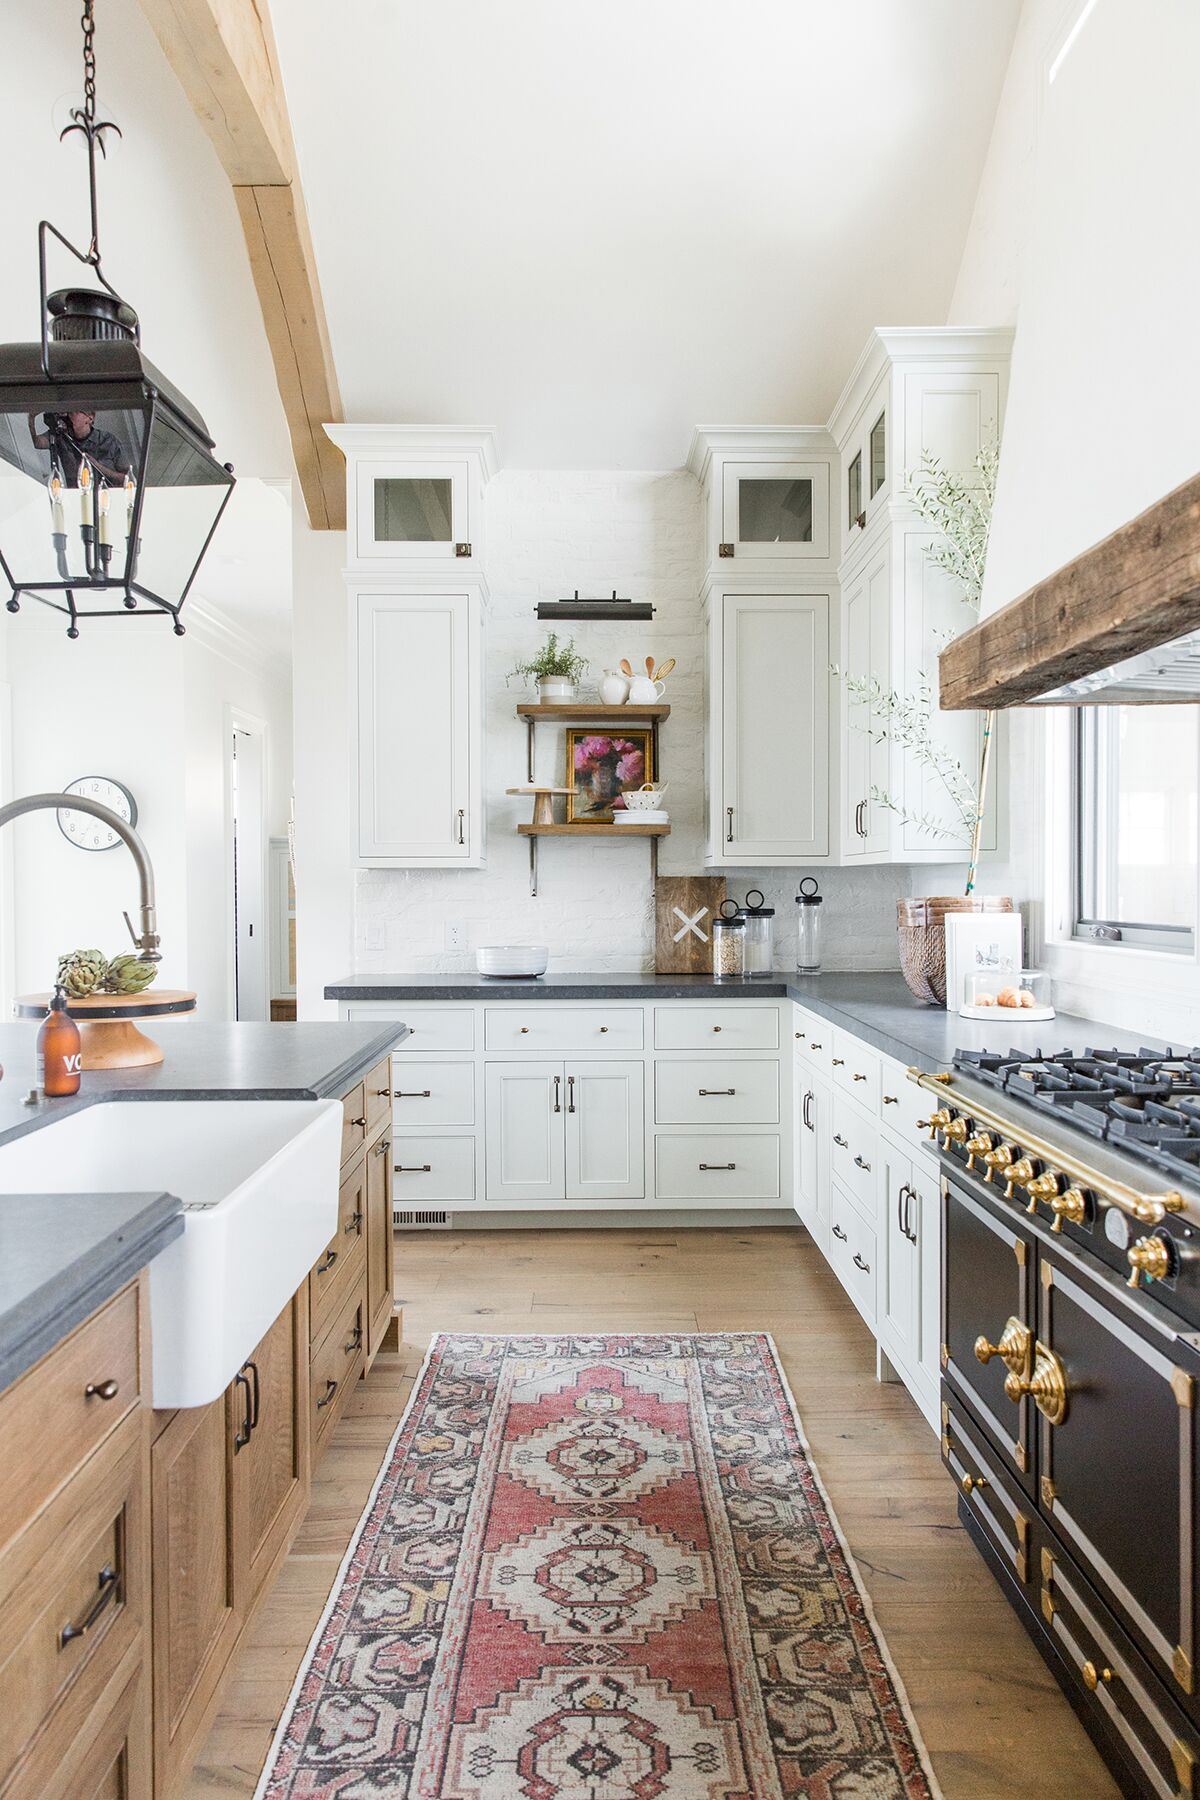 Refined,+rustic+kitchen+with+exposed+wooden+beams,+hanging+lanterns,+painted+white+brick,+oven+range+in+mountain+home+-+Studio+McGee+Design-4.jpg